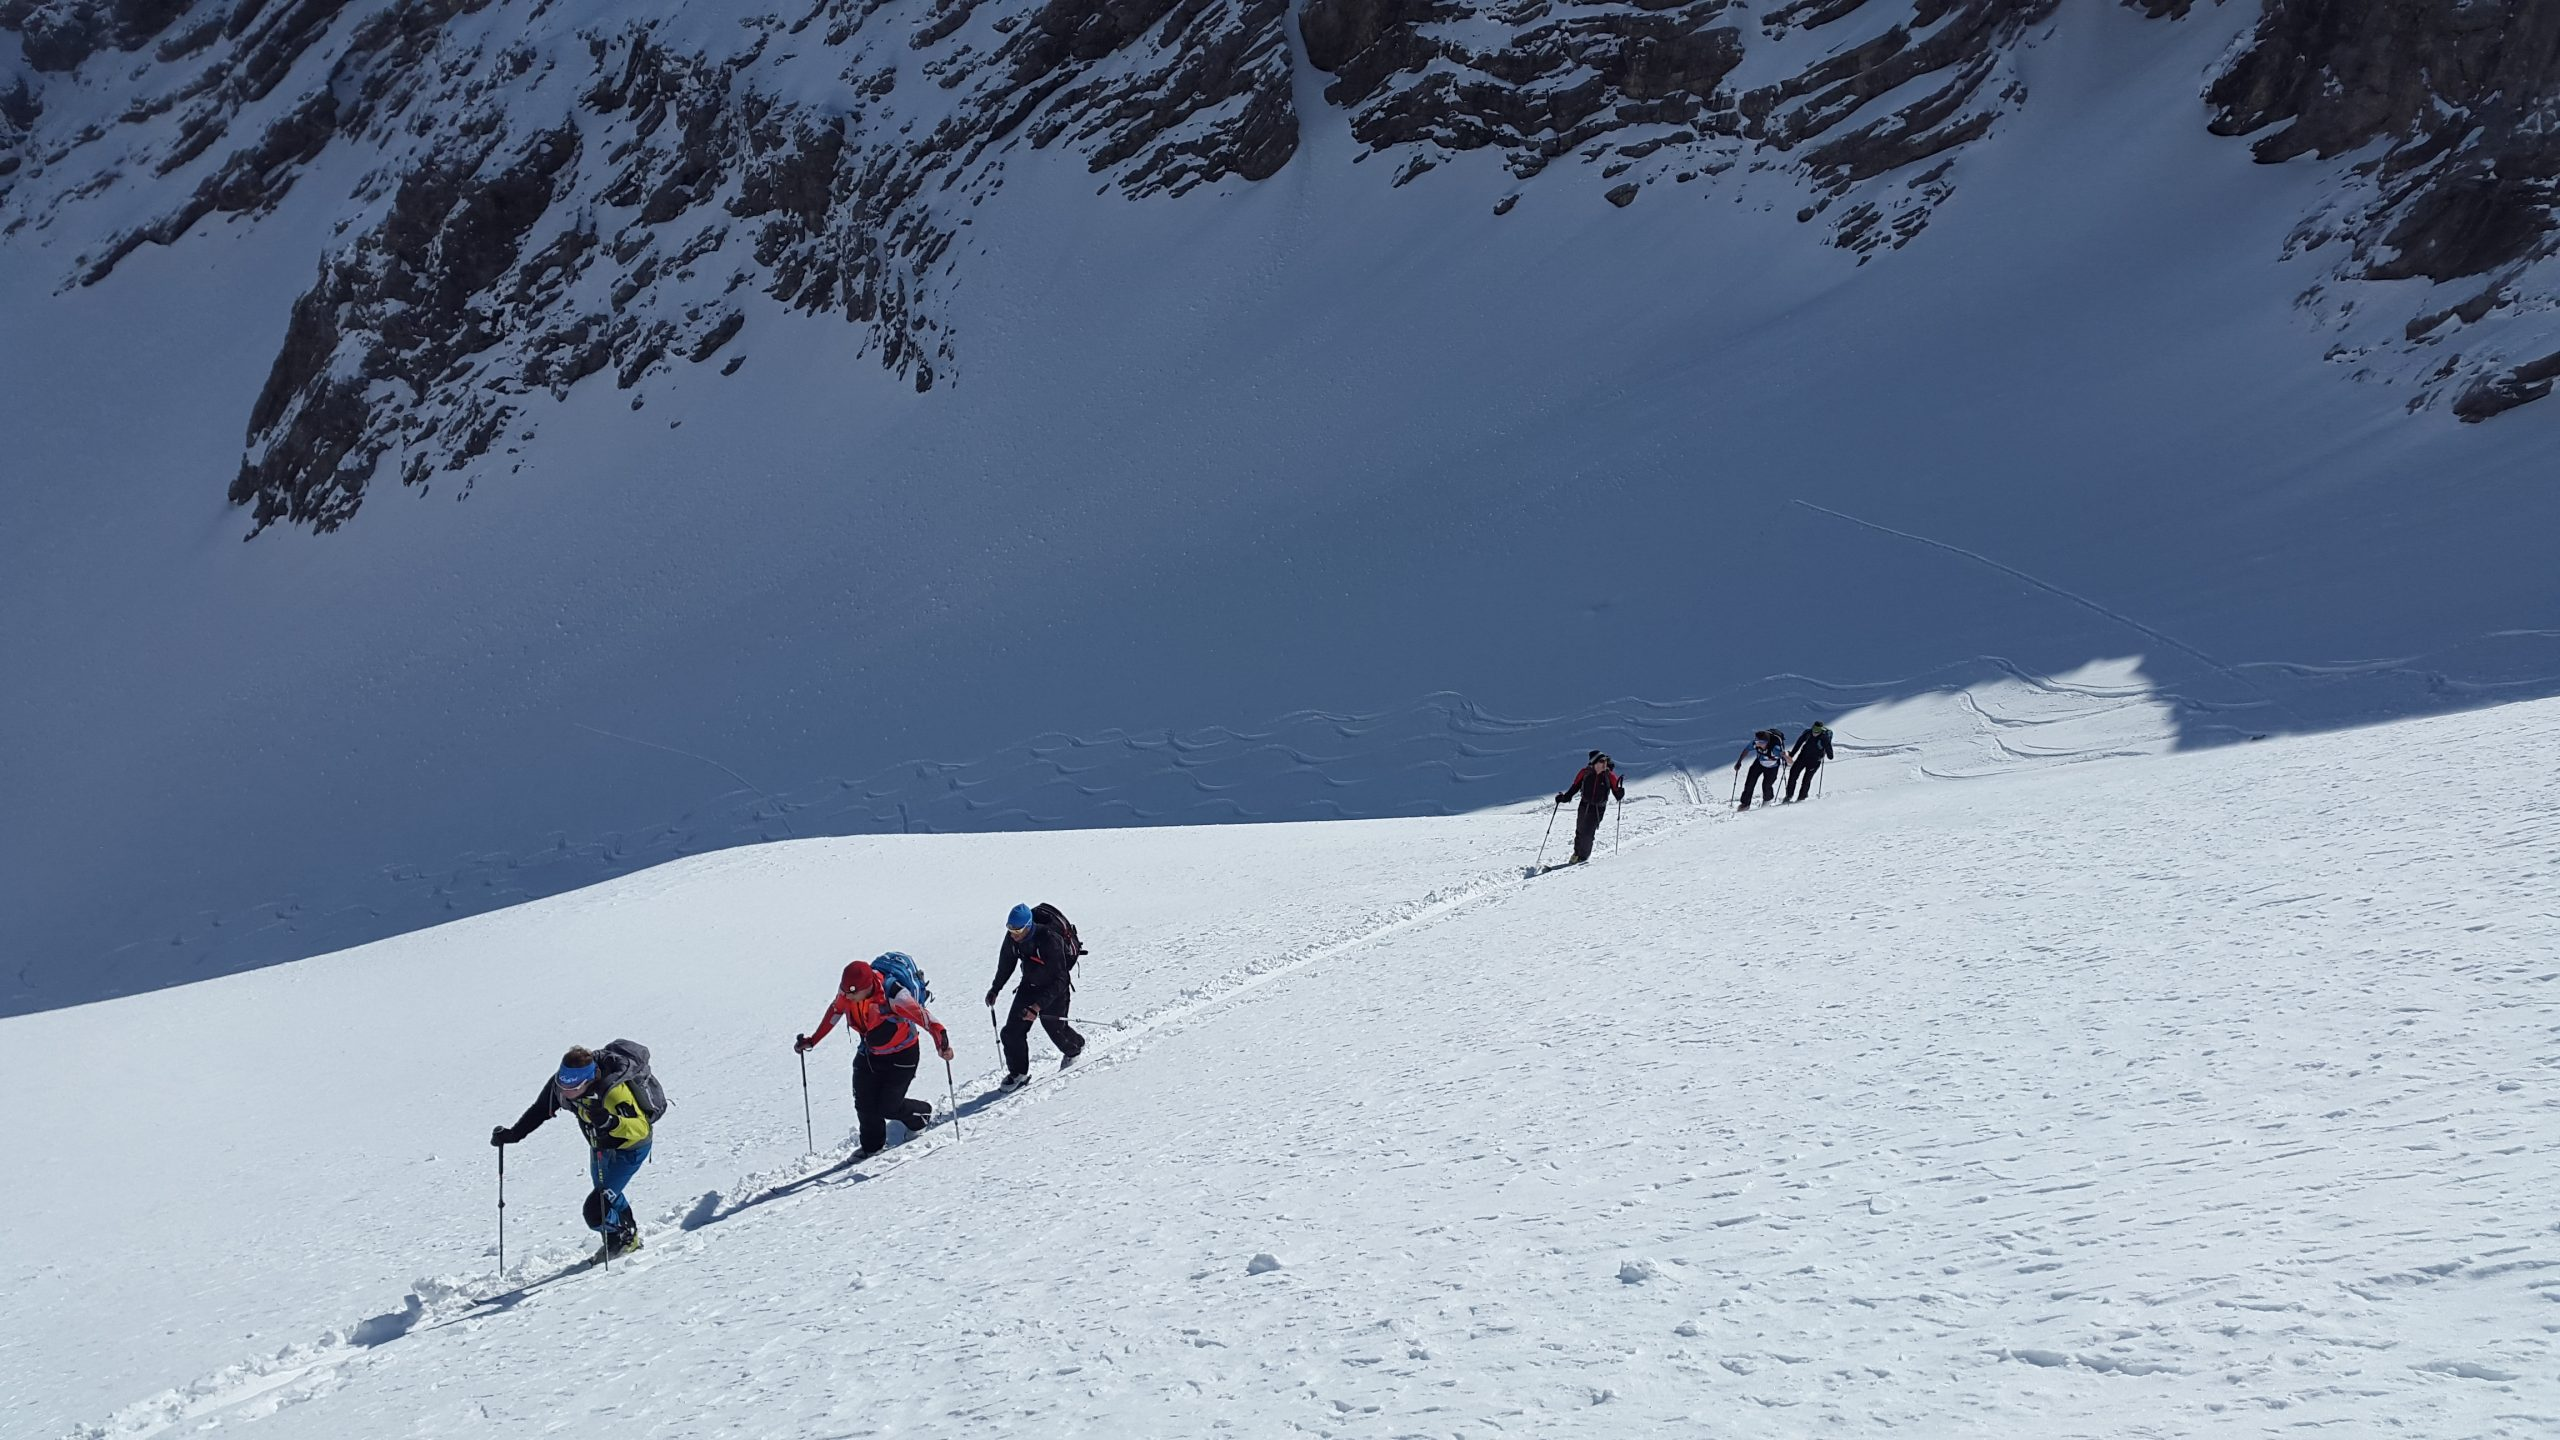 ski-mountaineering-1375016